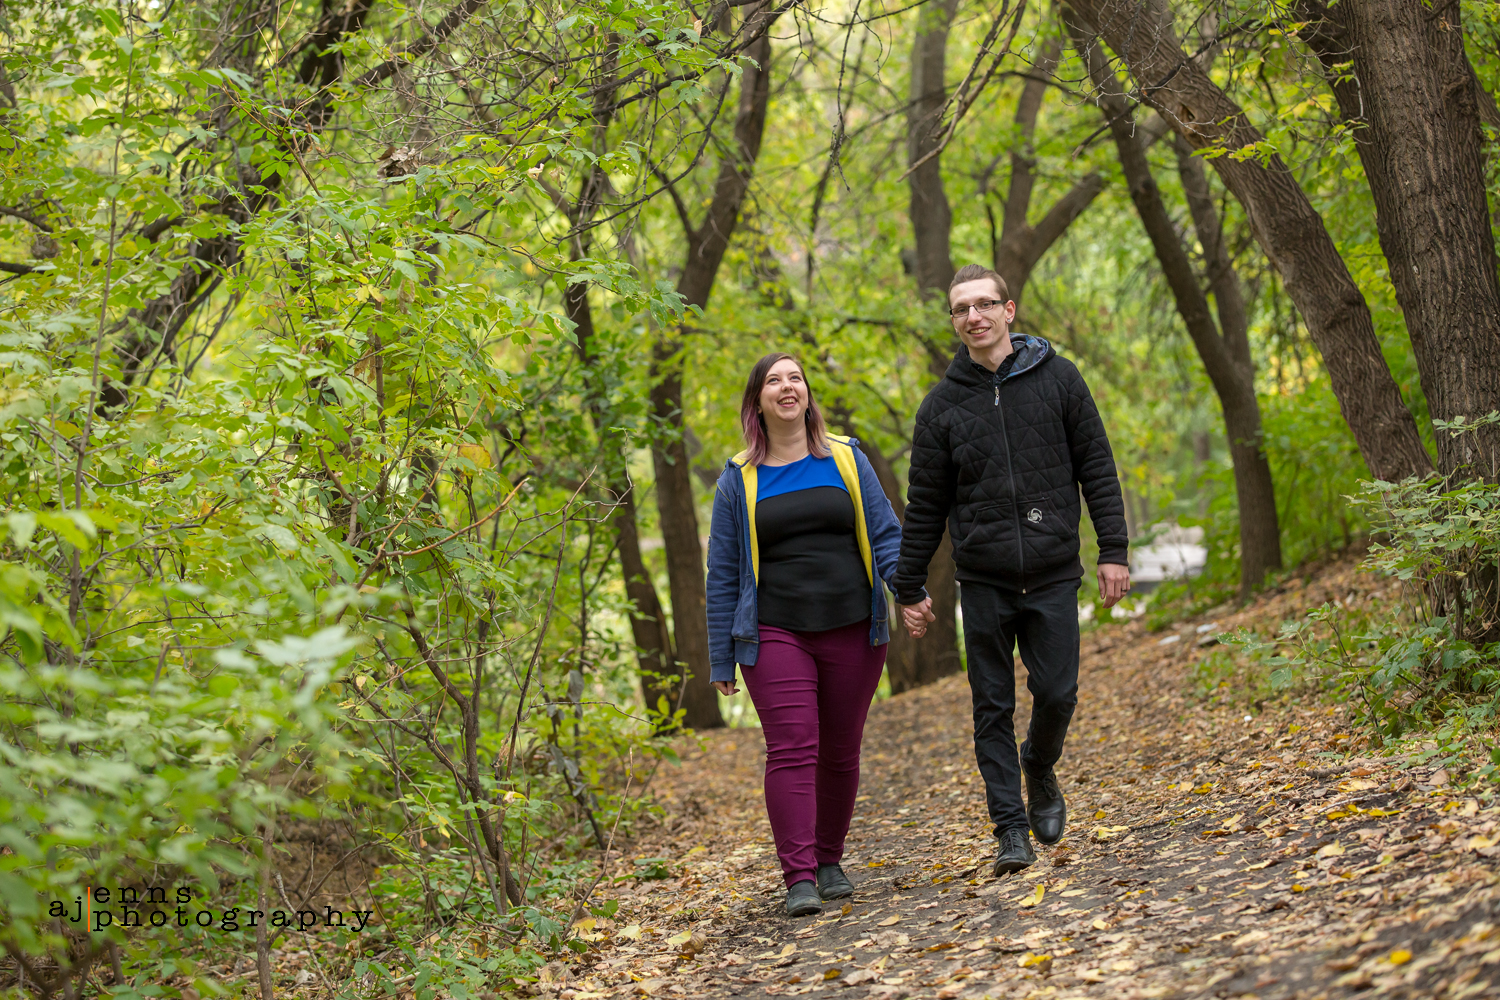 The couple walks holding hands down a leaf filled path